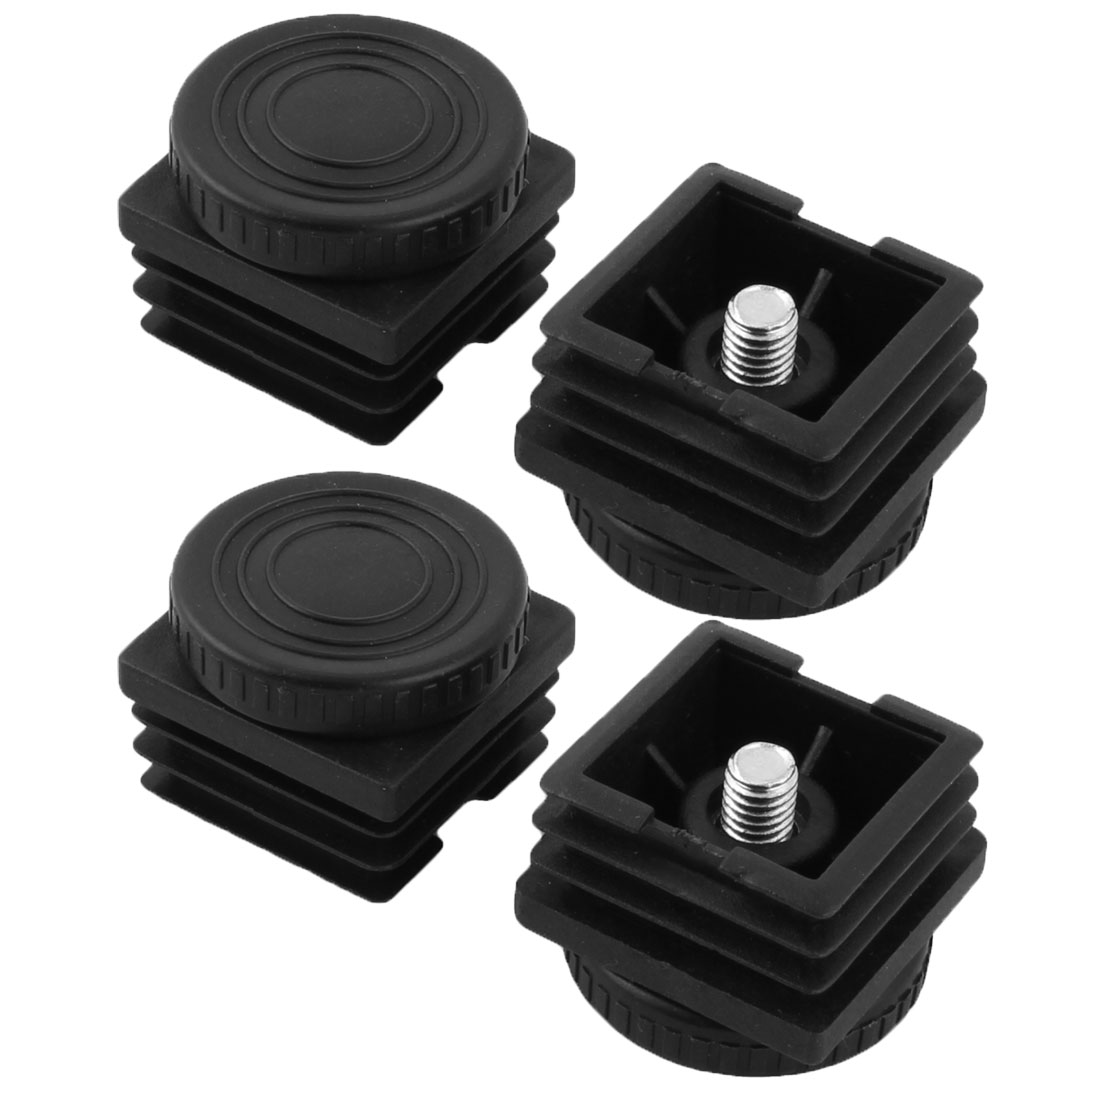 Home Plastic Chair Protector Adjustable Leveling Foot Tube Insert Black 4 Pcs